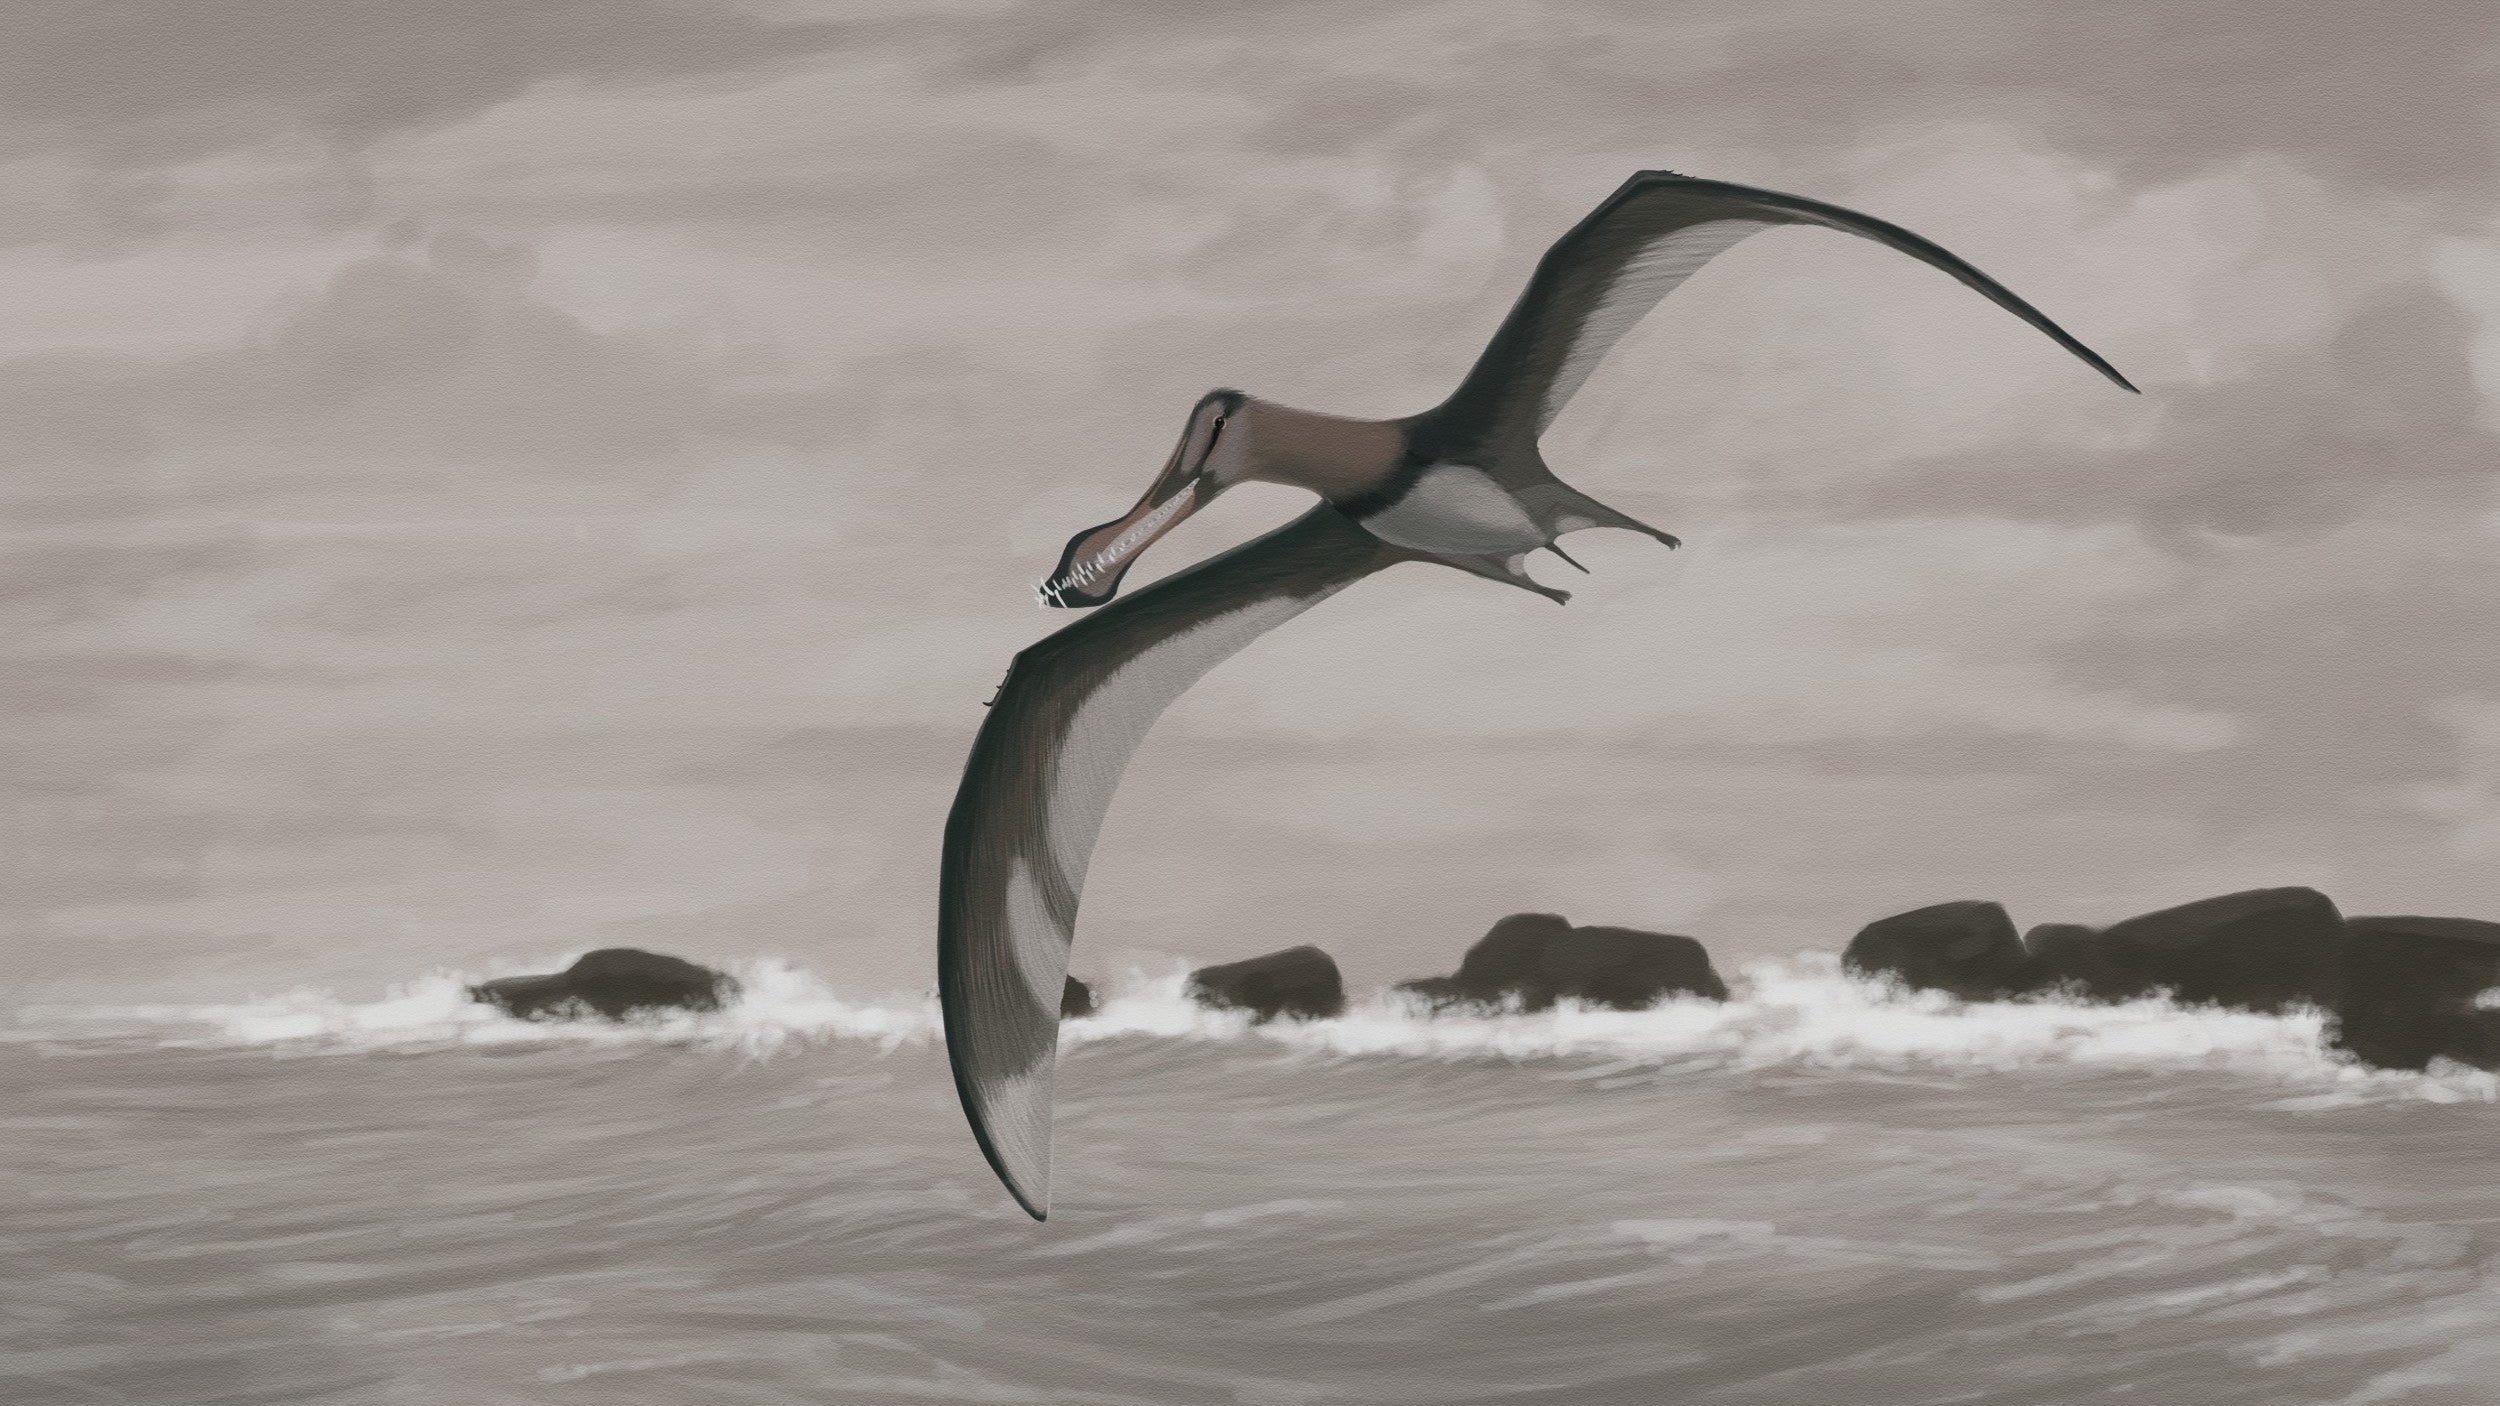 Pterodactyls Probably Didn't Fly Like We Think They Did